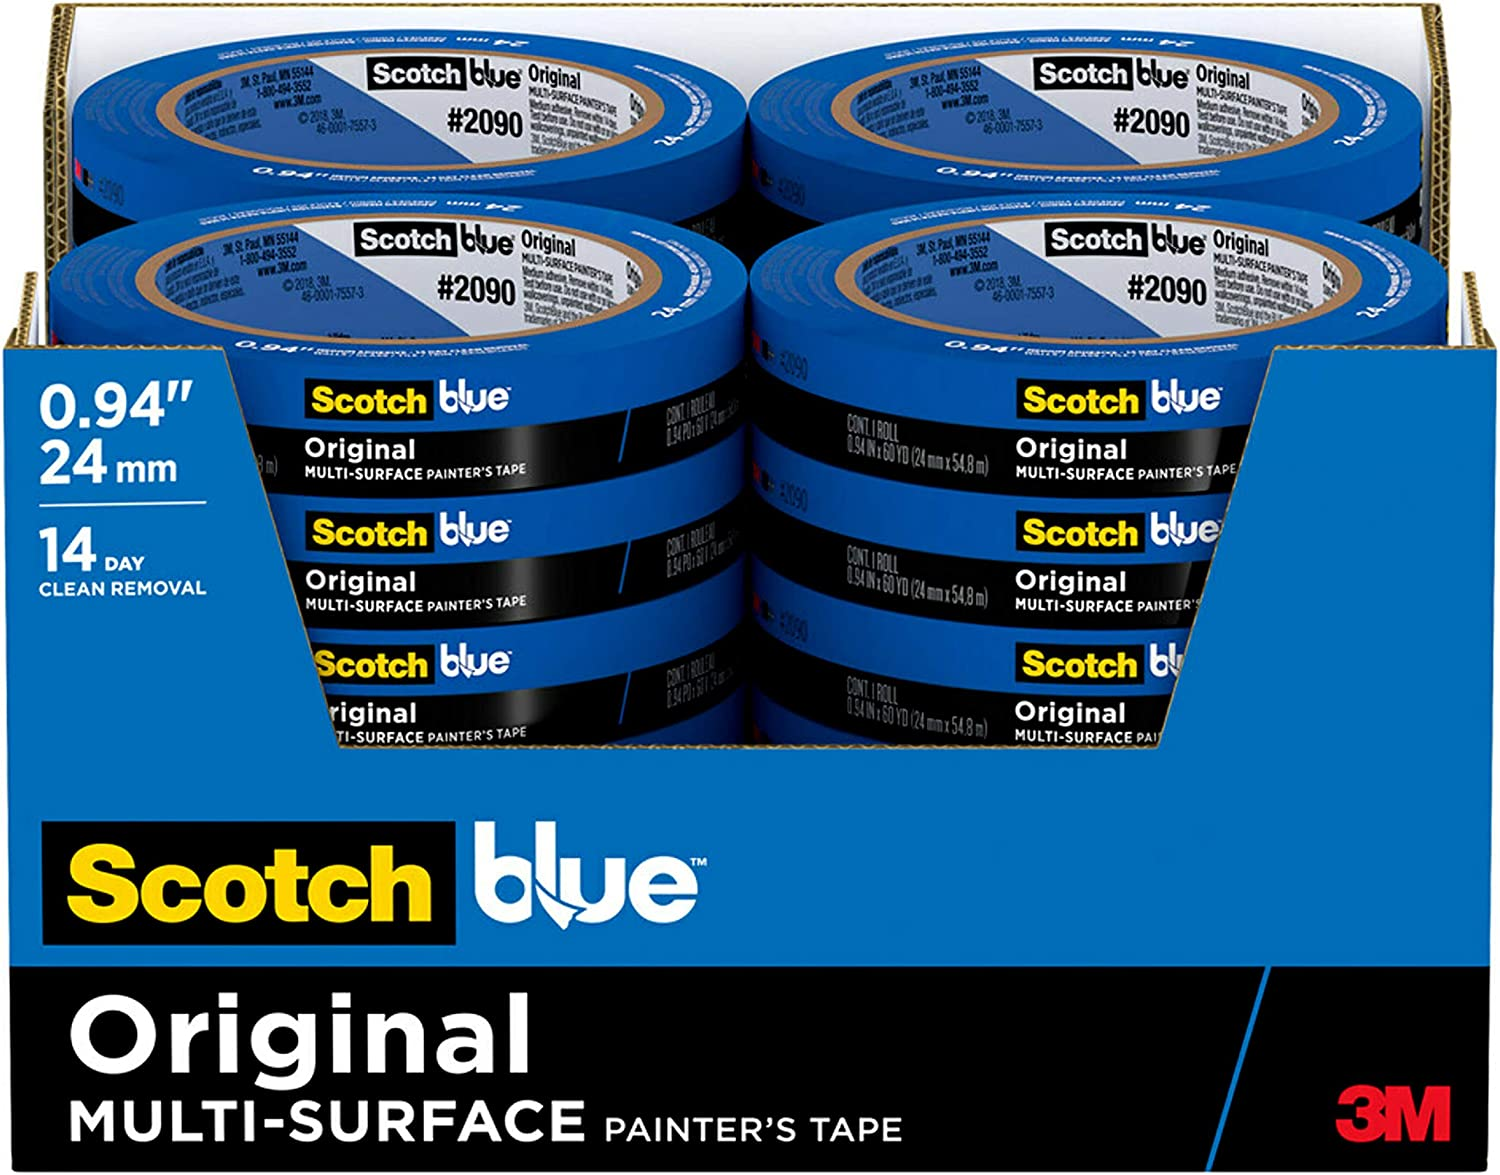 ScotchBlue Original Safety and trust Multi-Surface Recommended Painter's Tape 0.94 2090-24EC